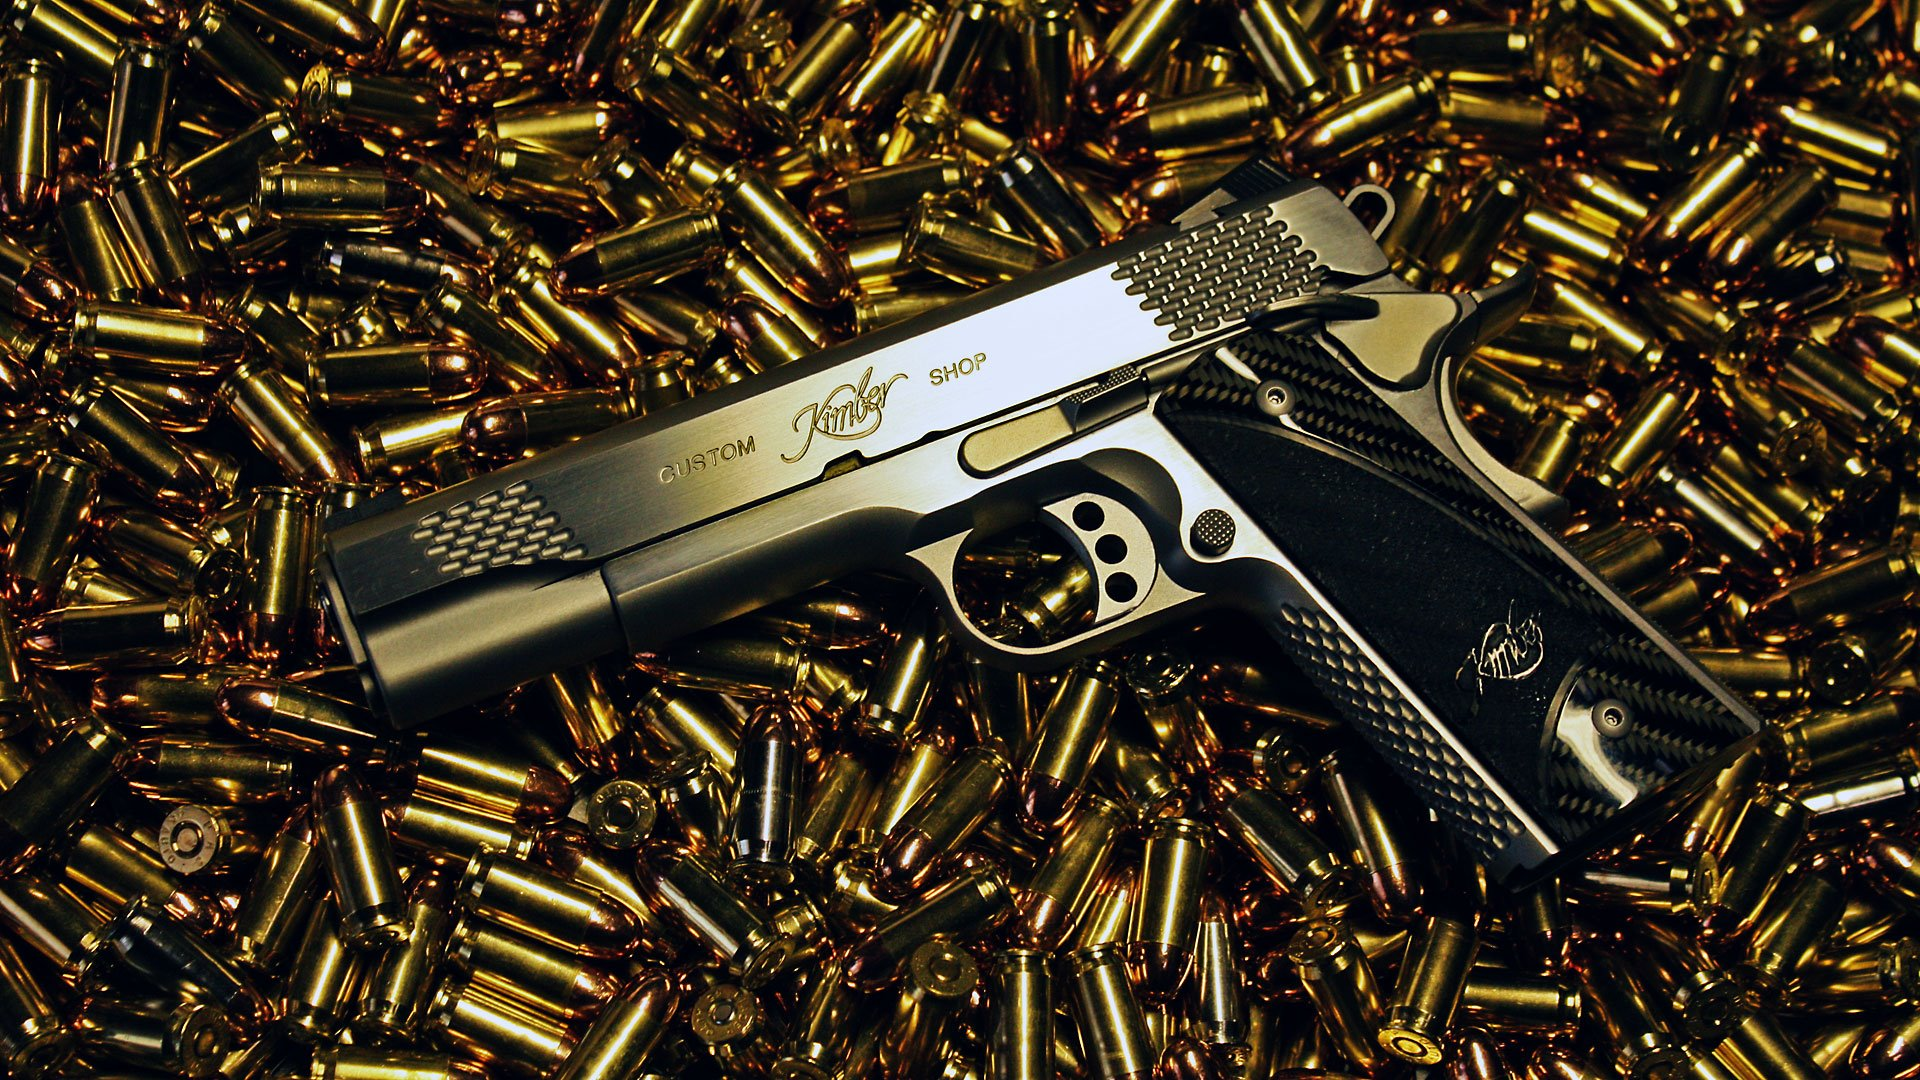 Kimber Pistol Wallpapers 37 images   DodoWallpaper 1920x1080